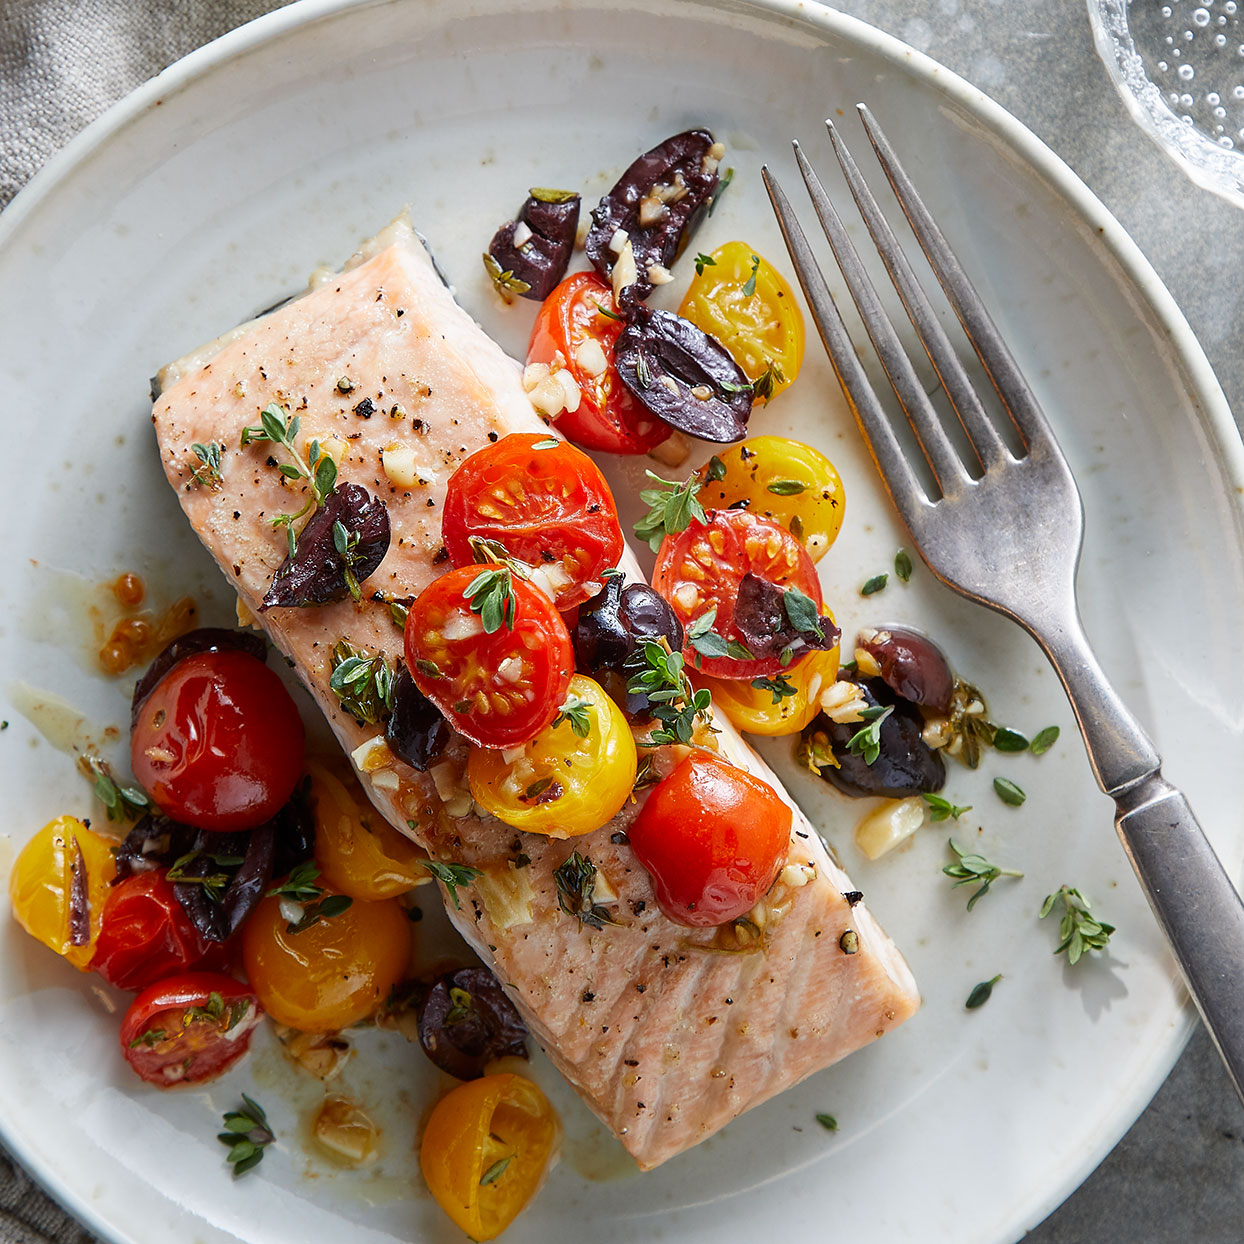 Keep the mess to minimum with this easy sheet-pan dinner. Cherry tomato halves roast alongside salmon fillets and make a delicious topping combined with olives, garlic and thyme in this easy fuss-free dinner. Source: EatingWell.com, March 2020